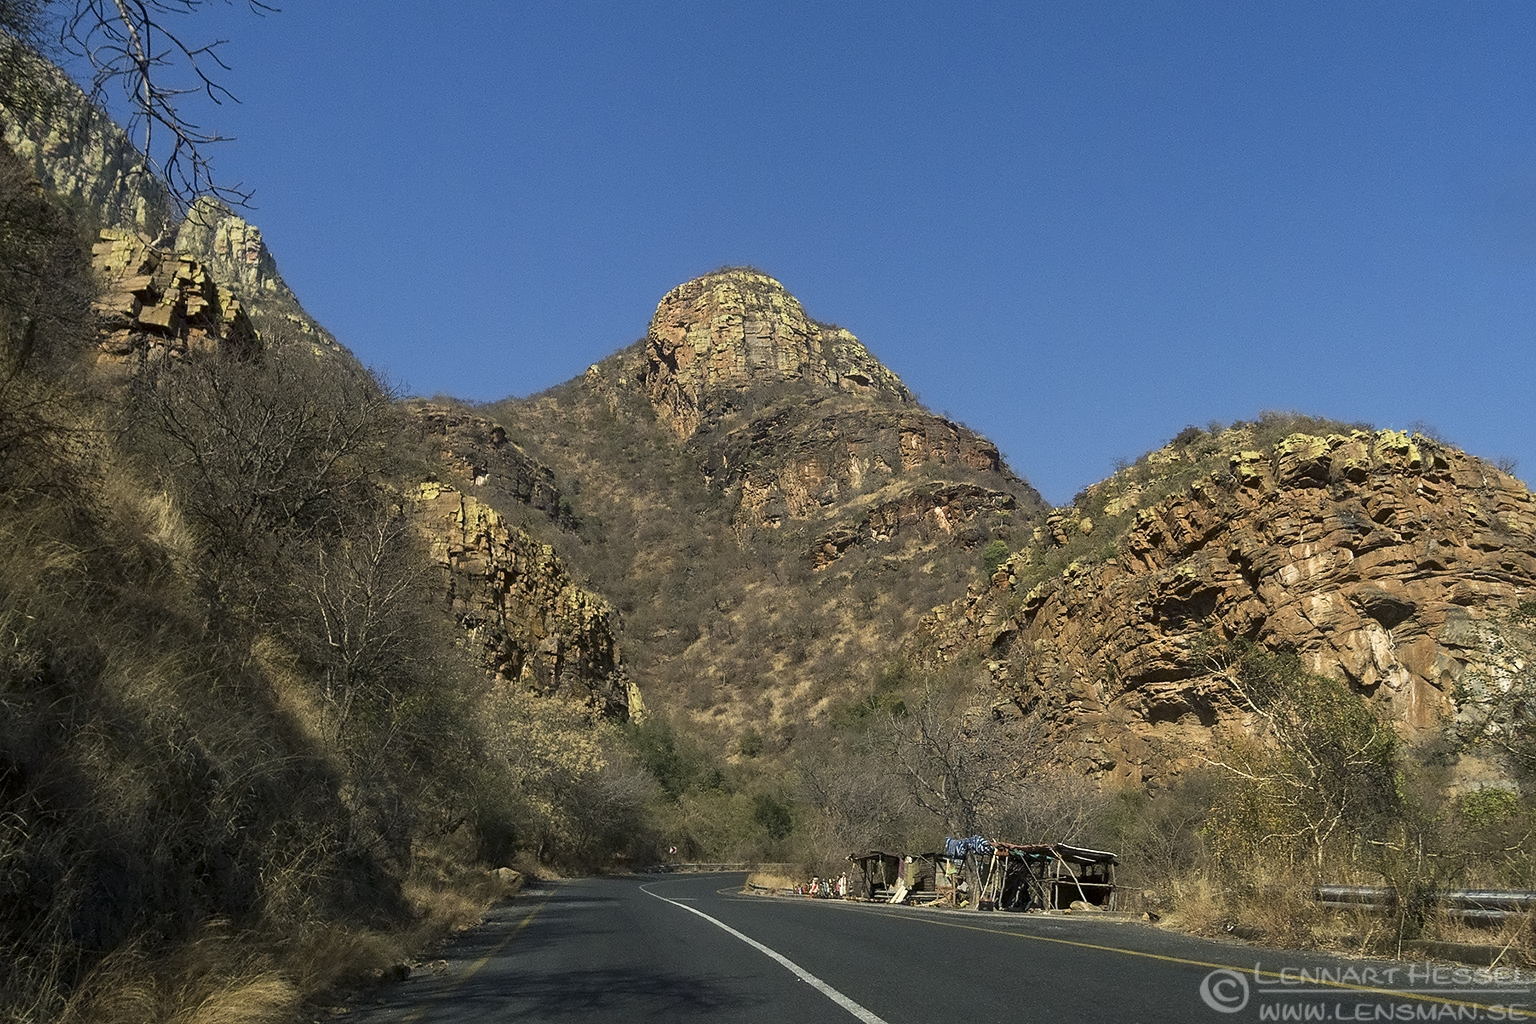 On the road back to Johannesburg South Africa